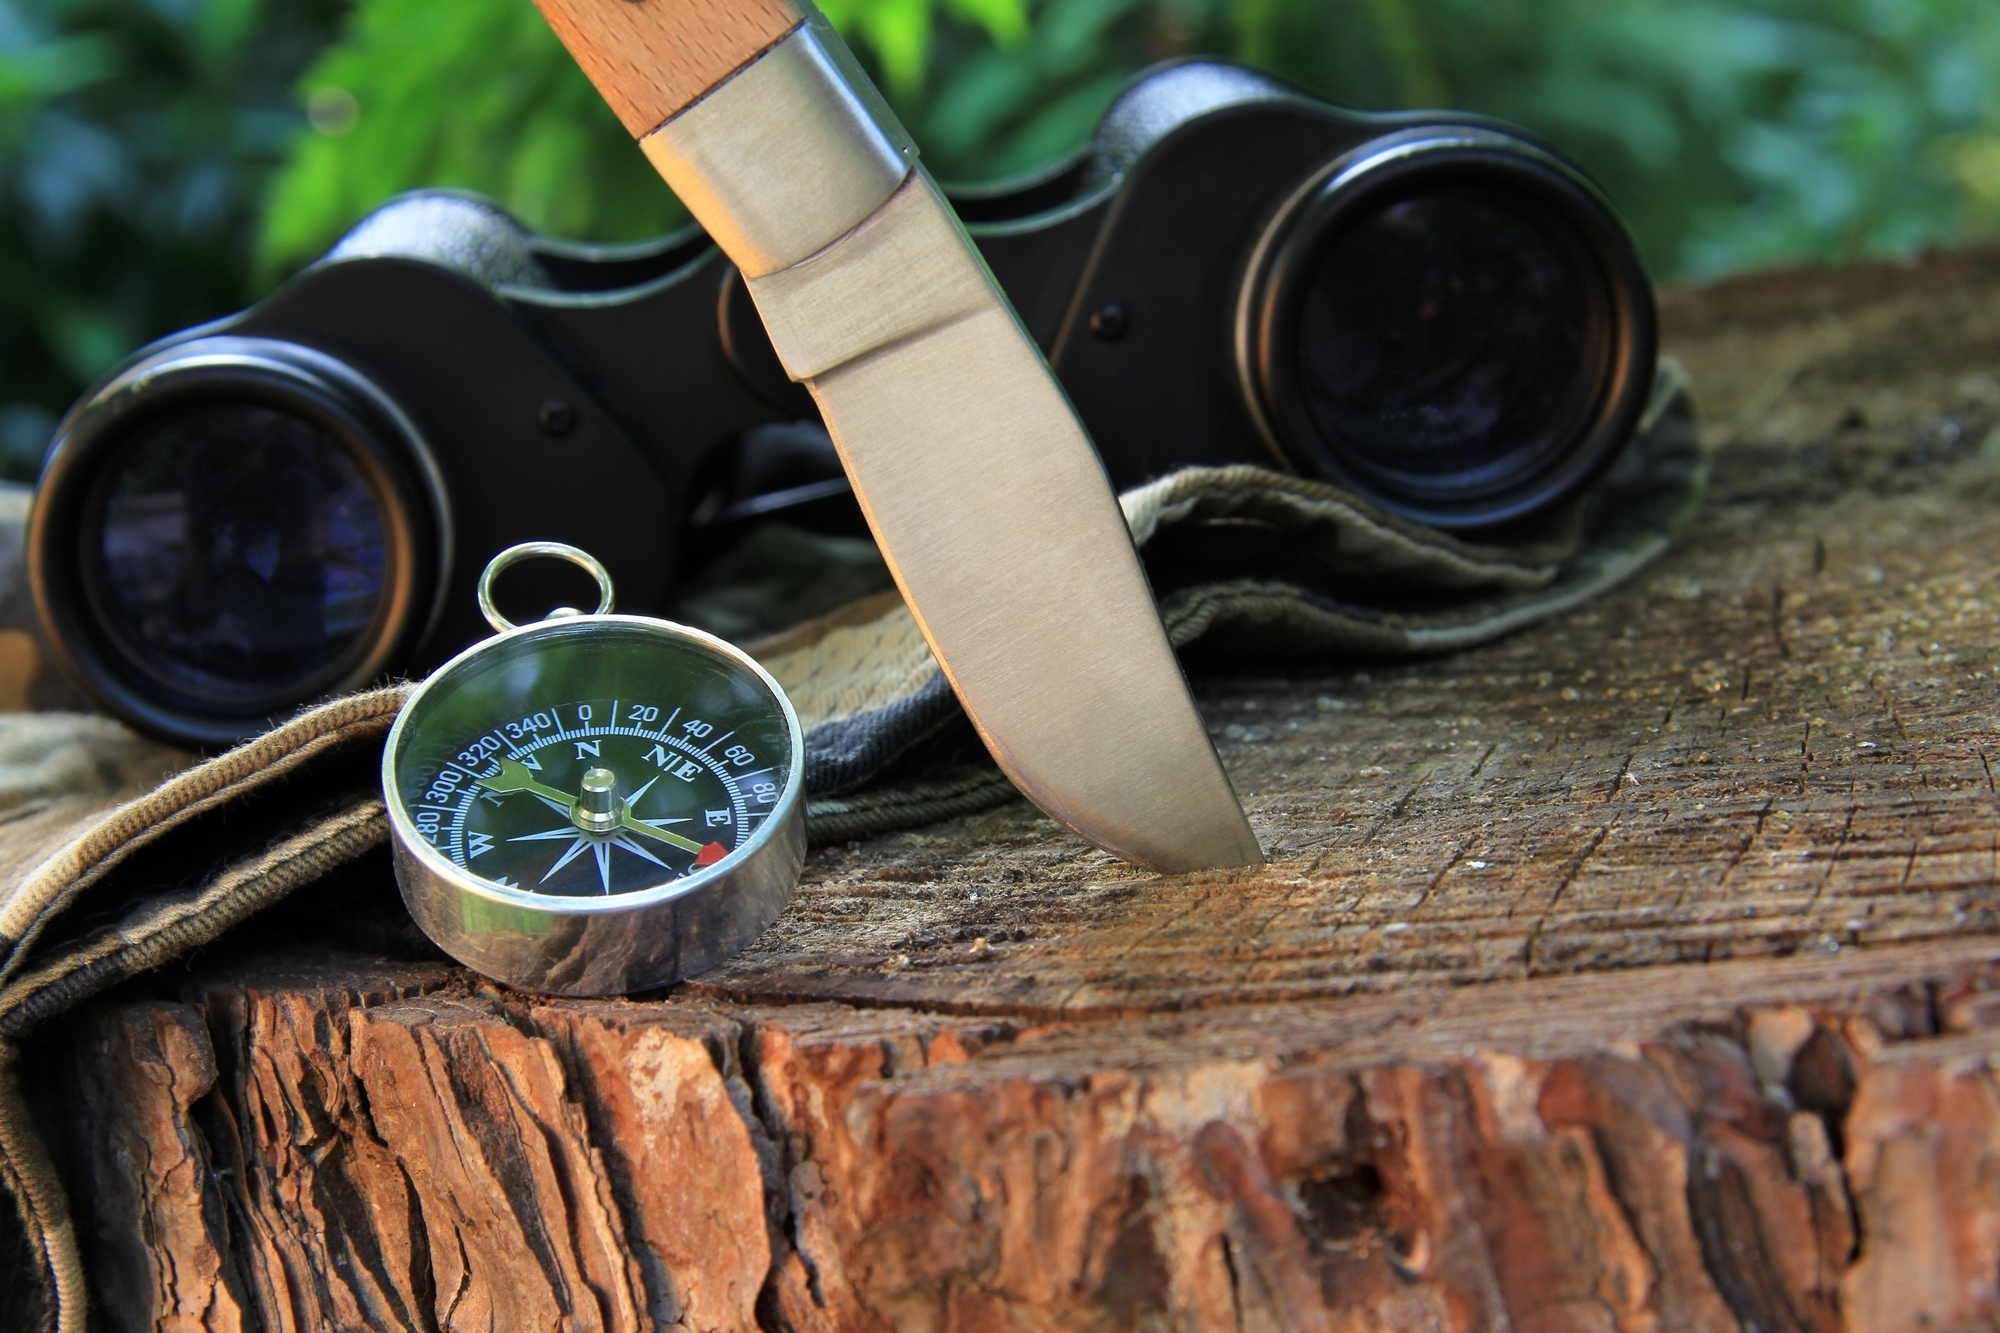 Survival BOB gear - compass knife and binoculars